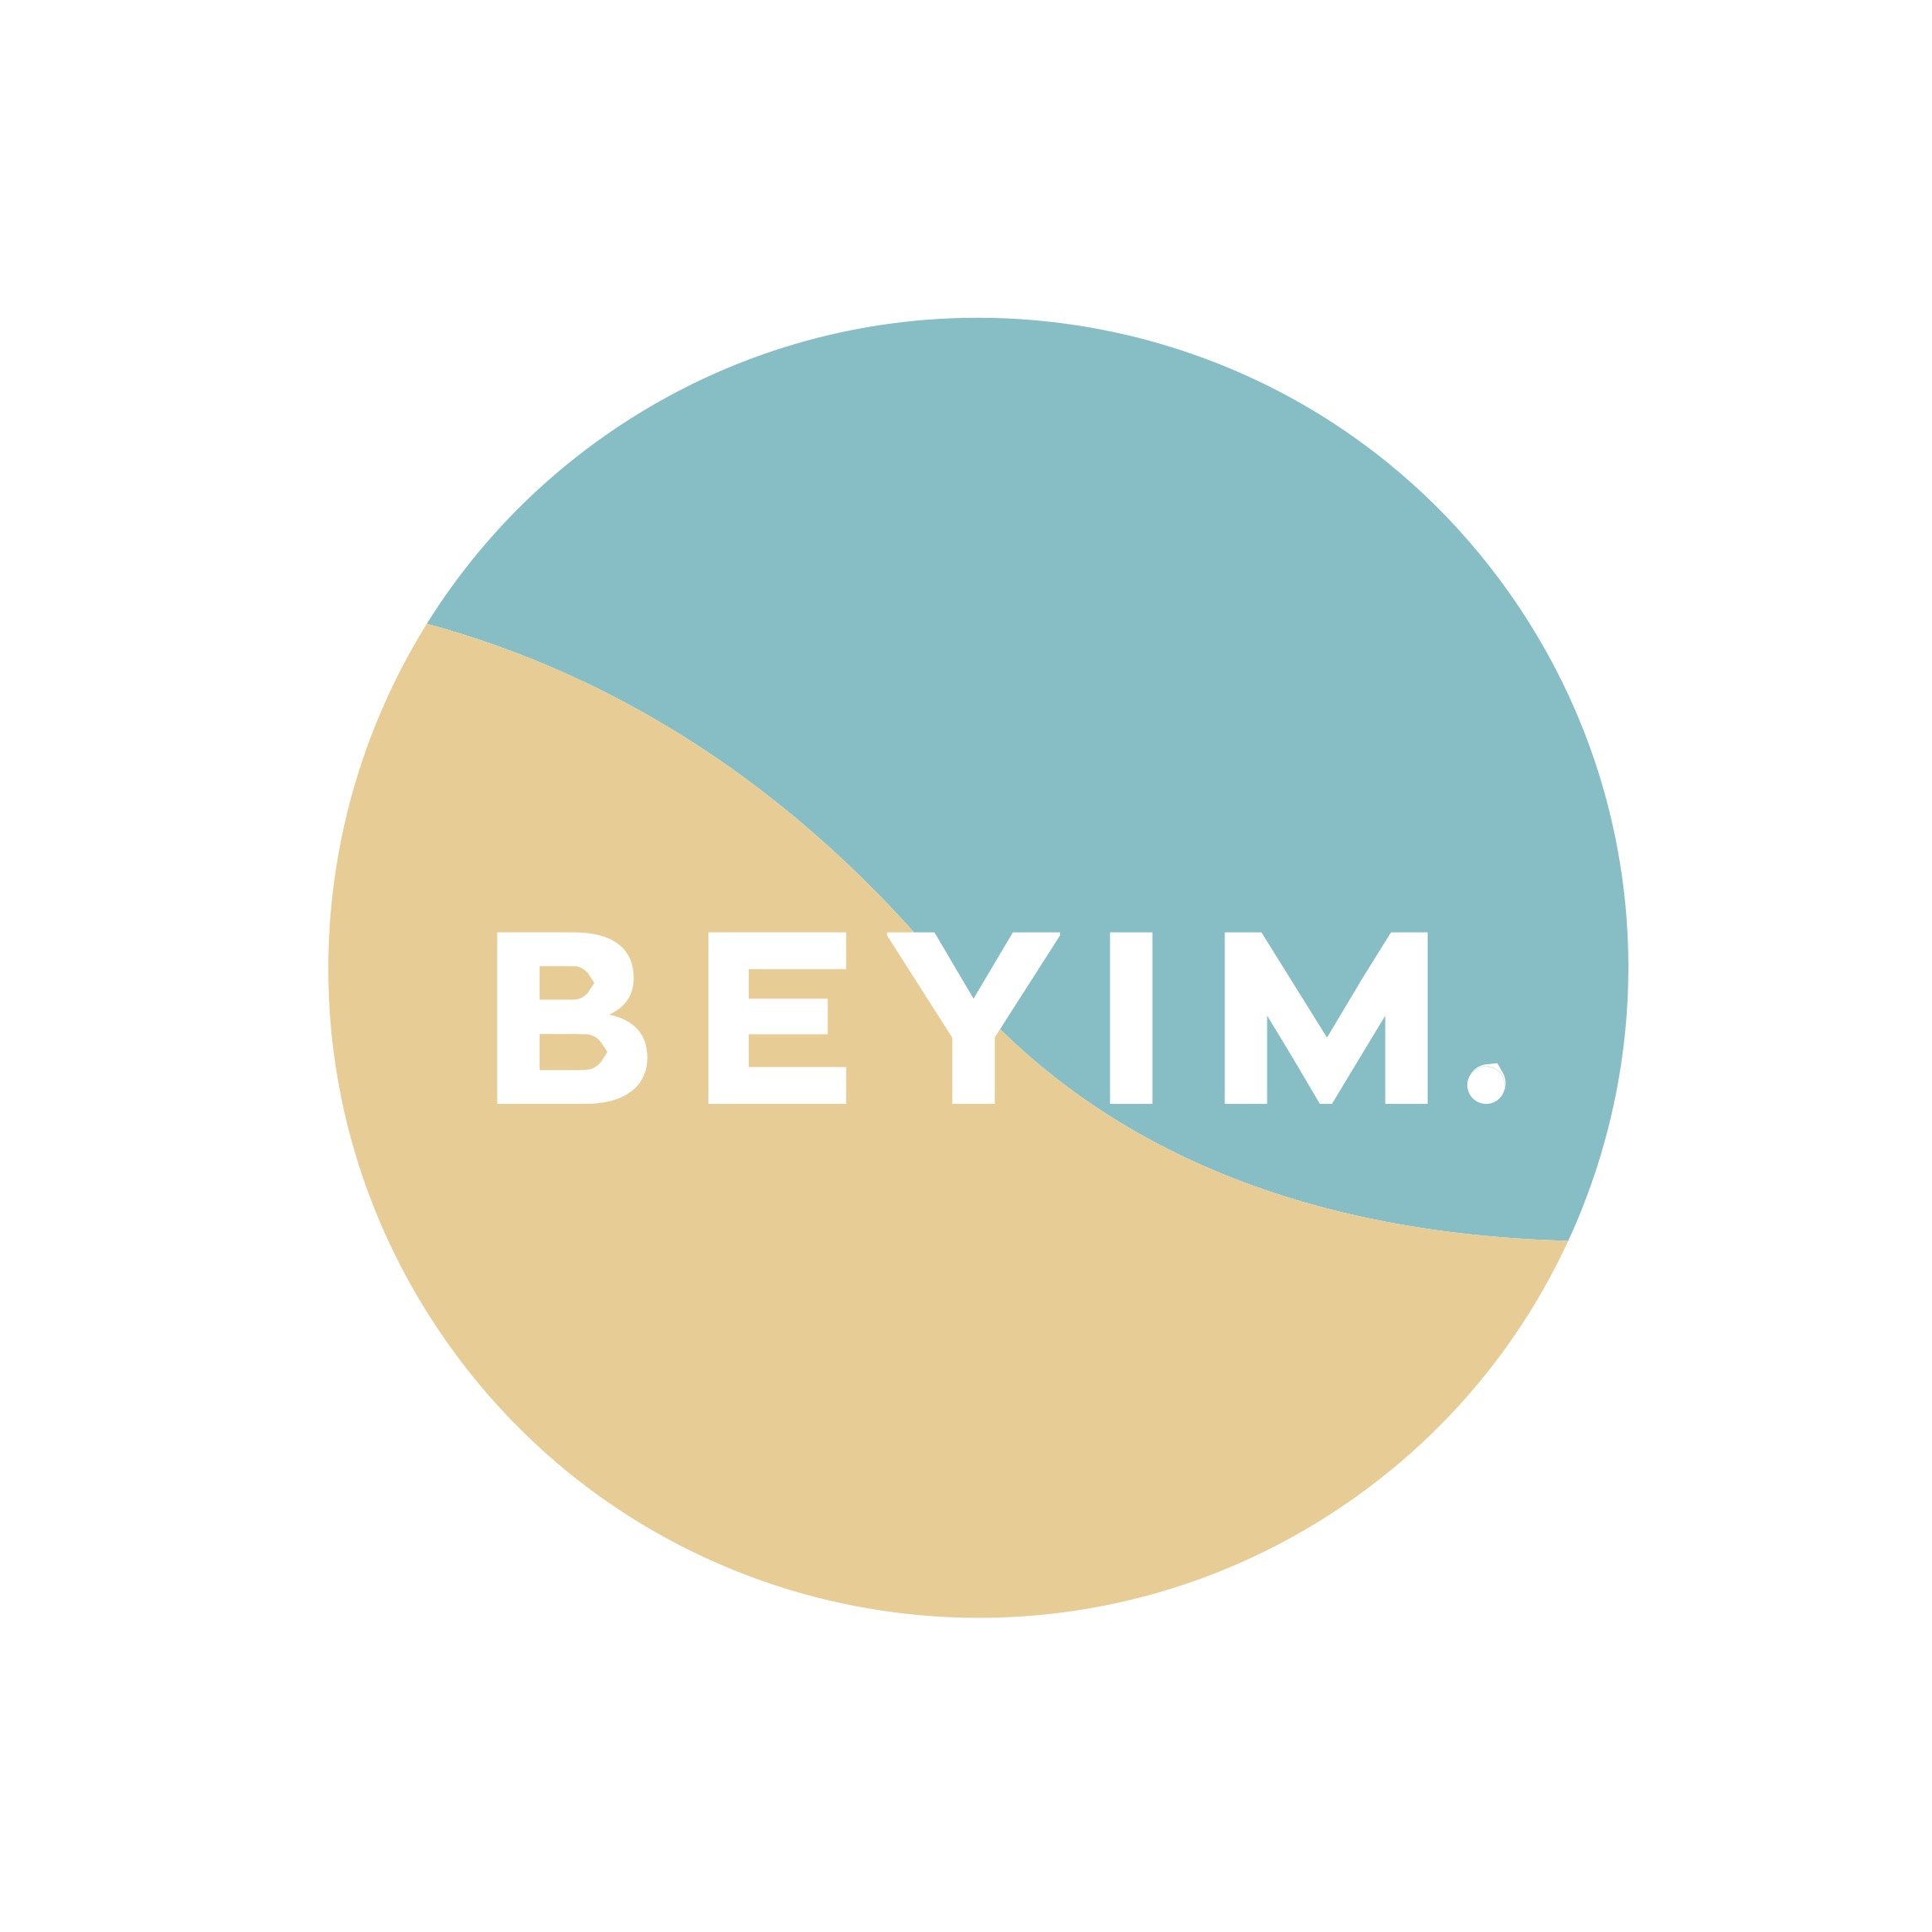 Beyim logo final logo mark #2